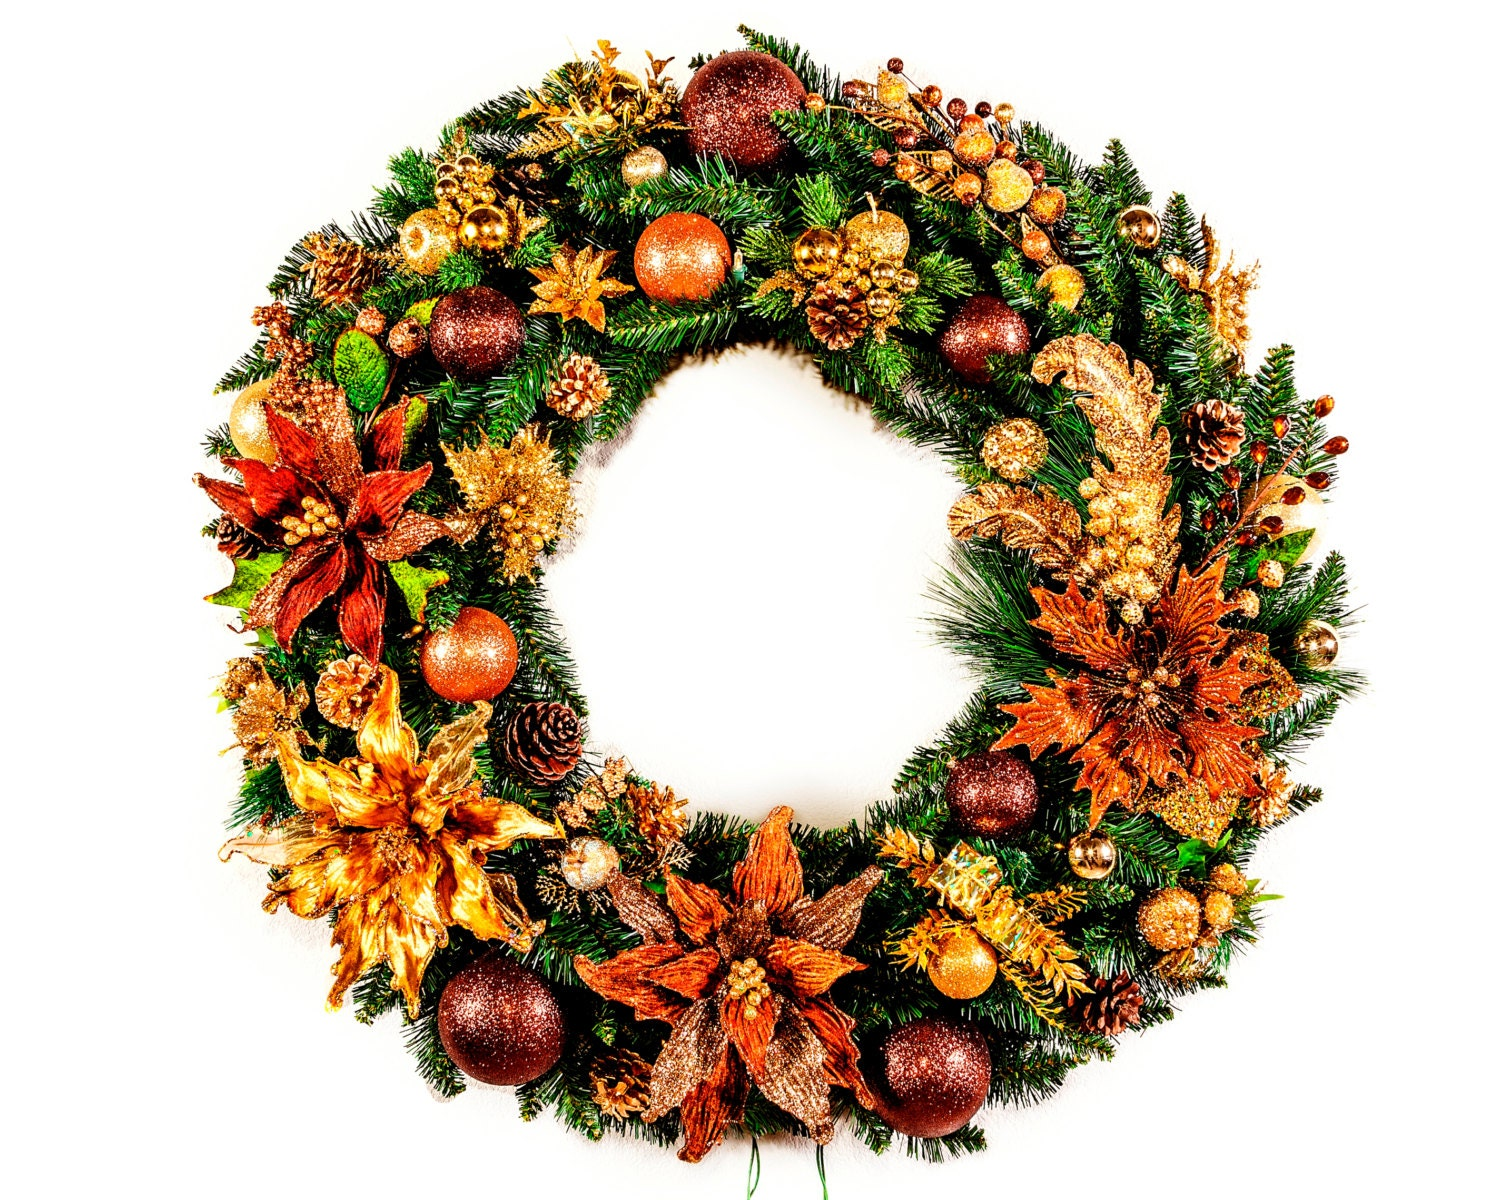 Giant Golden Brown Christmas Wreath with Lights - Silk Floral Arrangement